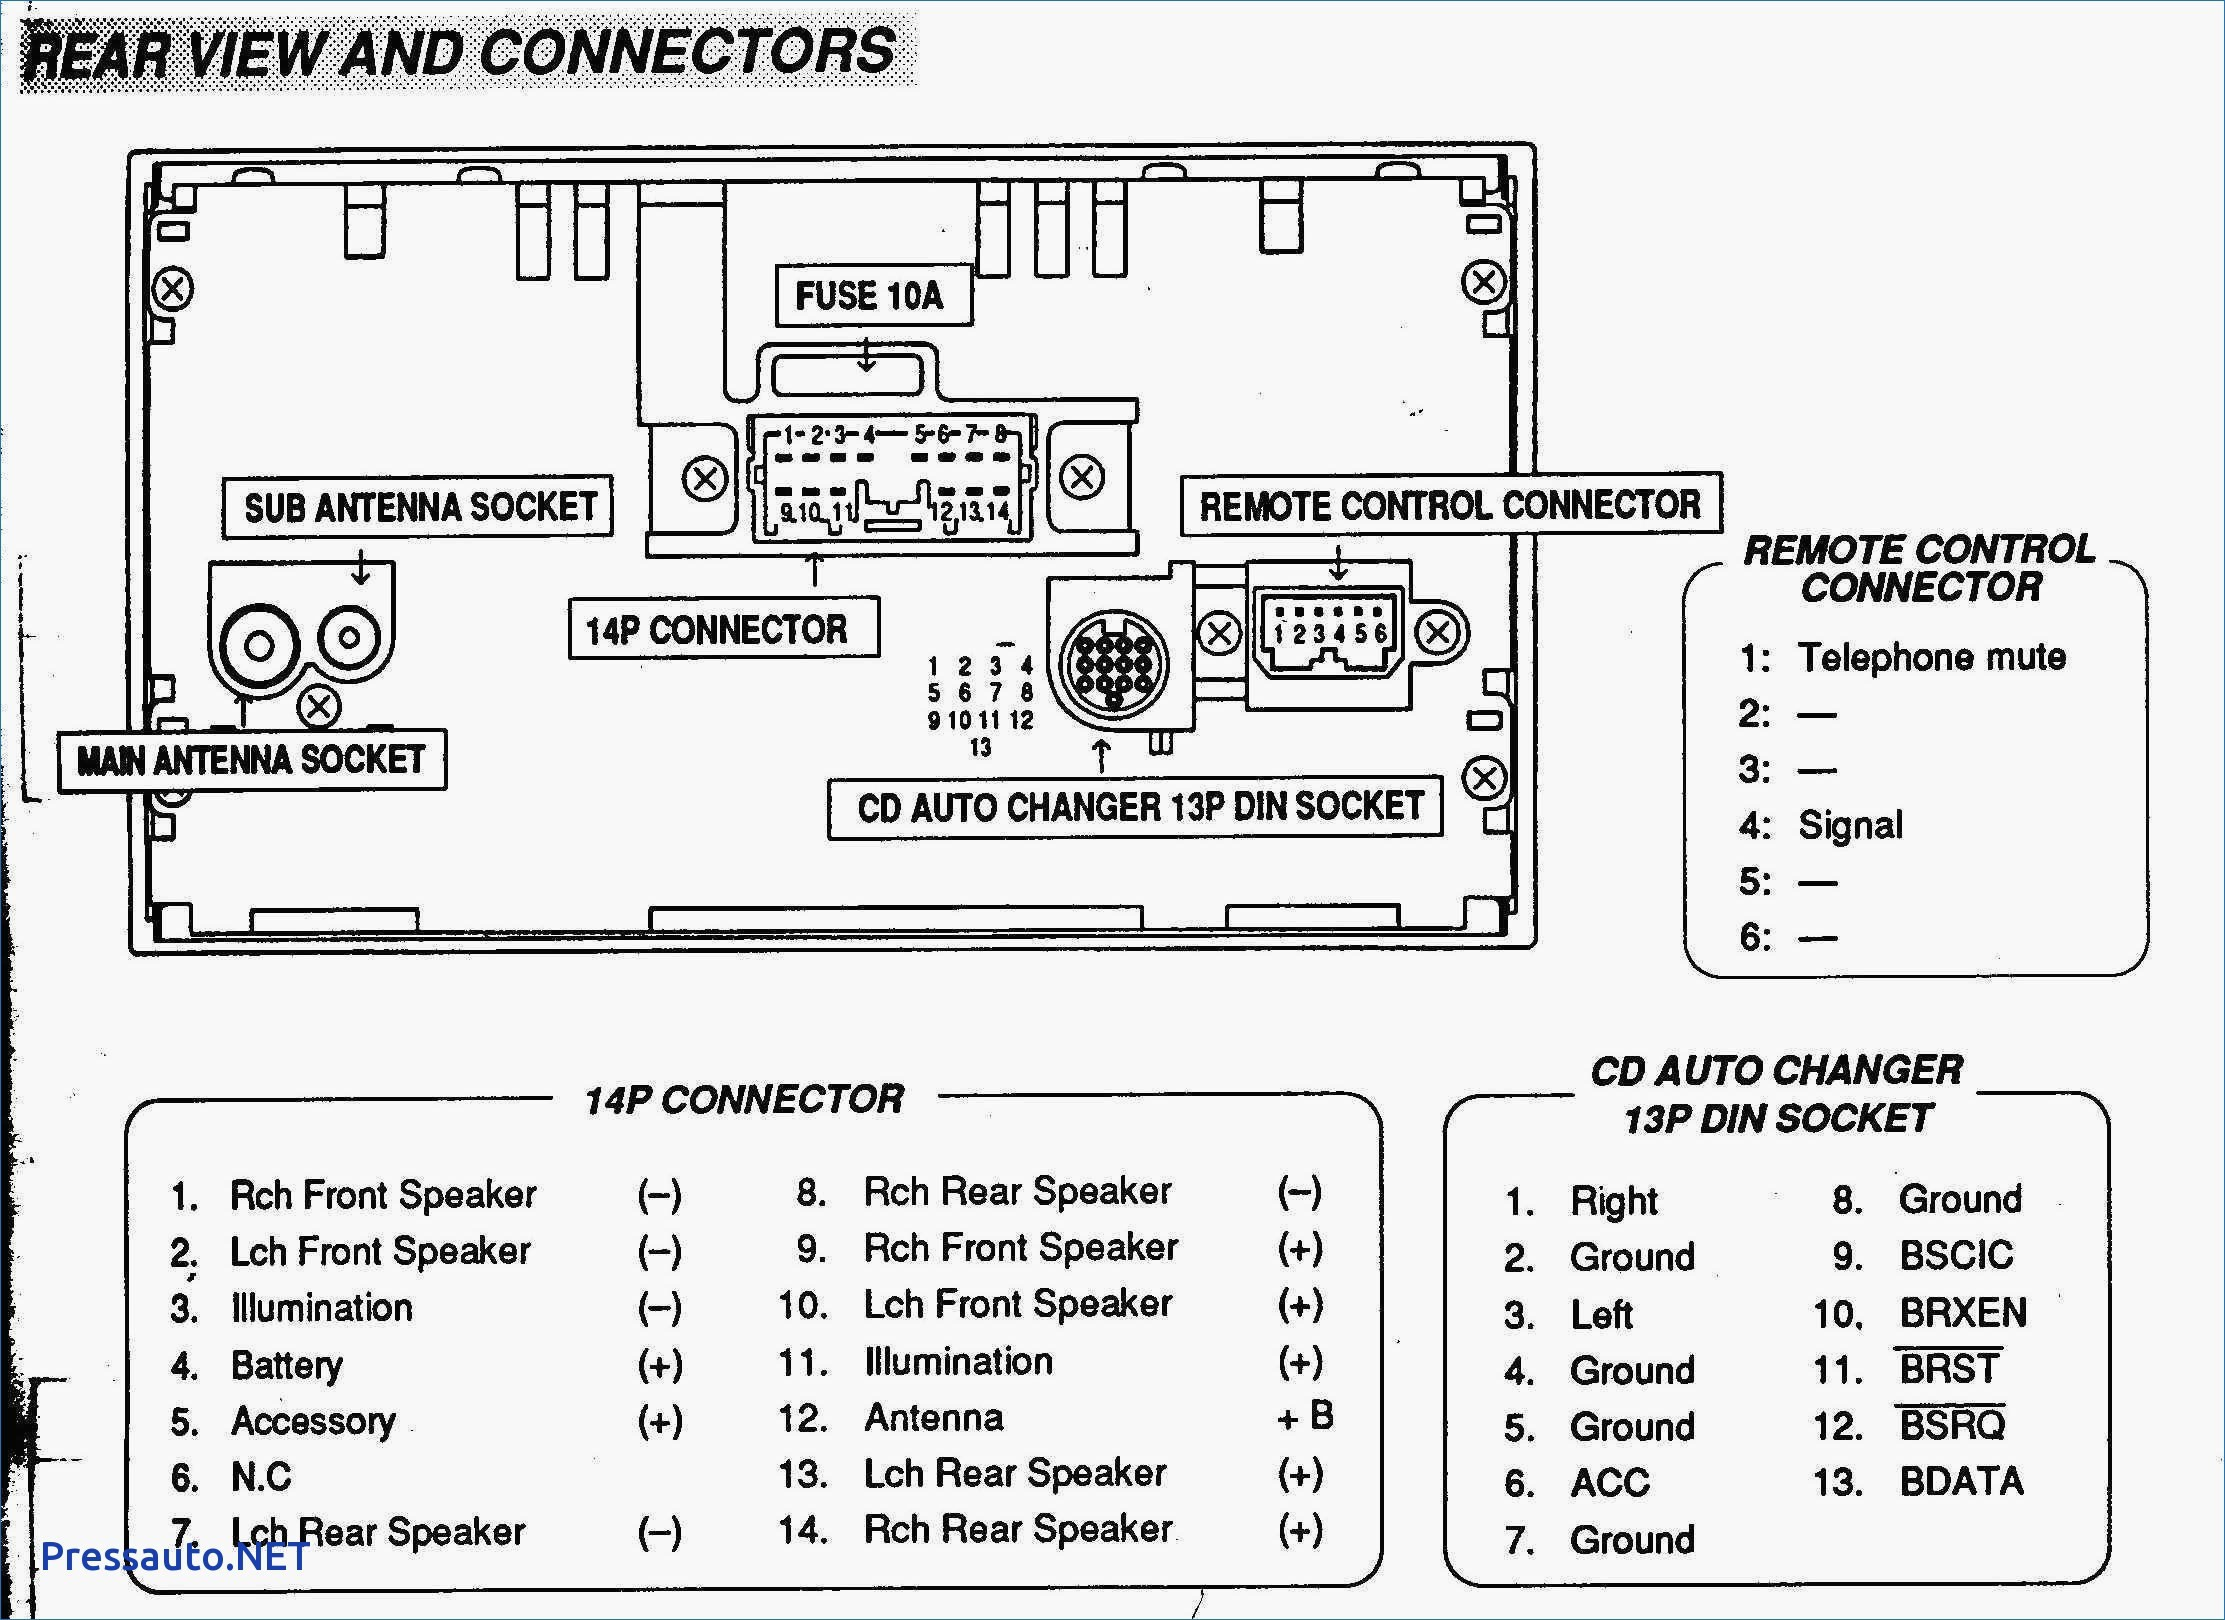 2000 Volkswagen Passat Engine Diagram 2001 Passat Fuse Box Another Blog About Wiring Diagram • Of 2000 Volkswagen Passat Engine Diagram 1967 Vw Fuse Box Diagram Experts Wiring Diagram •